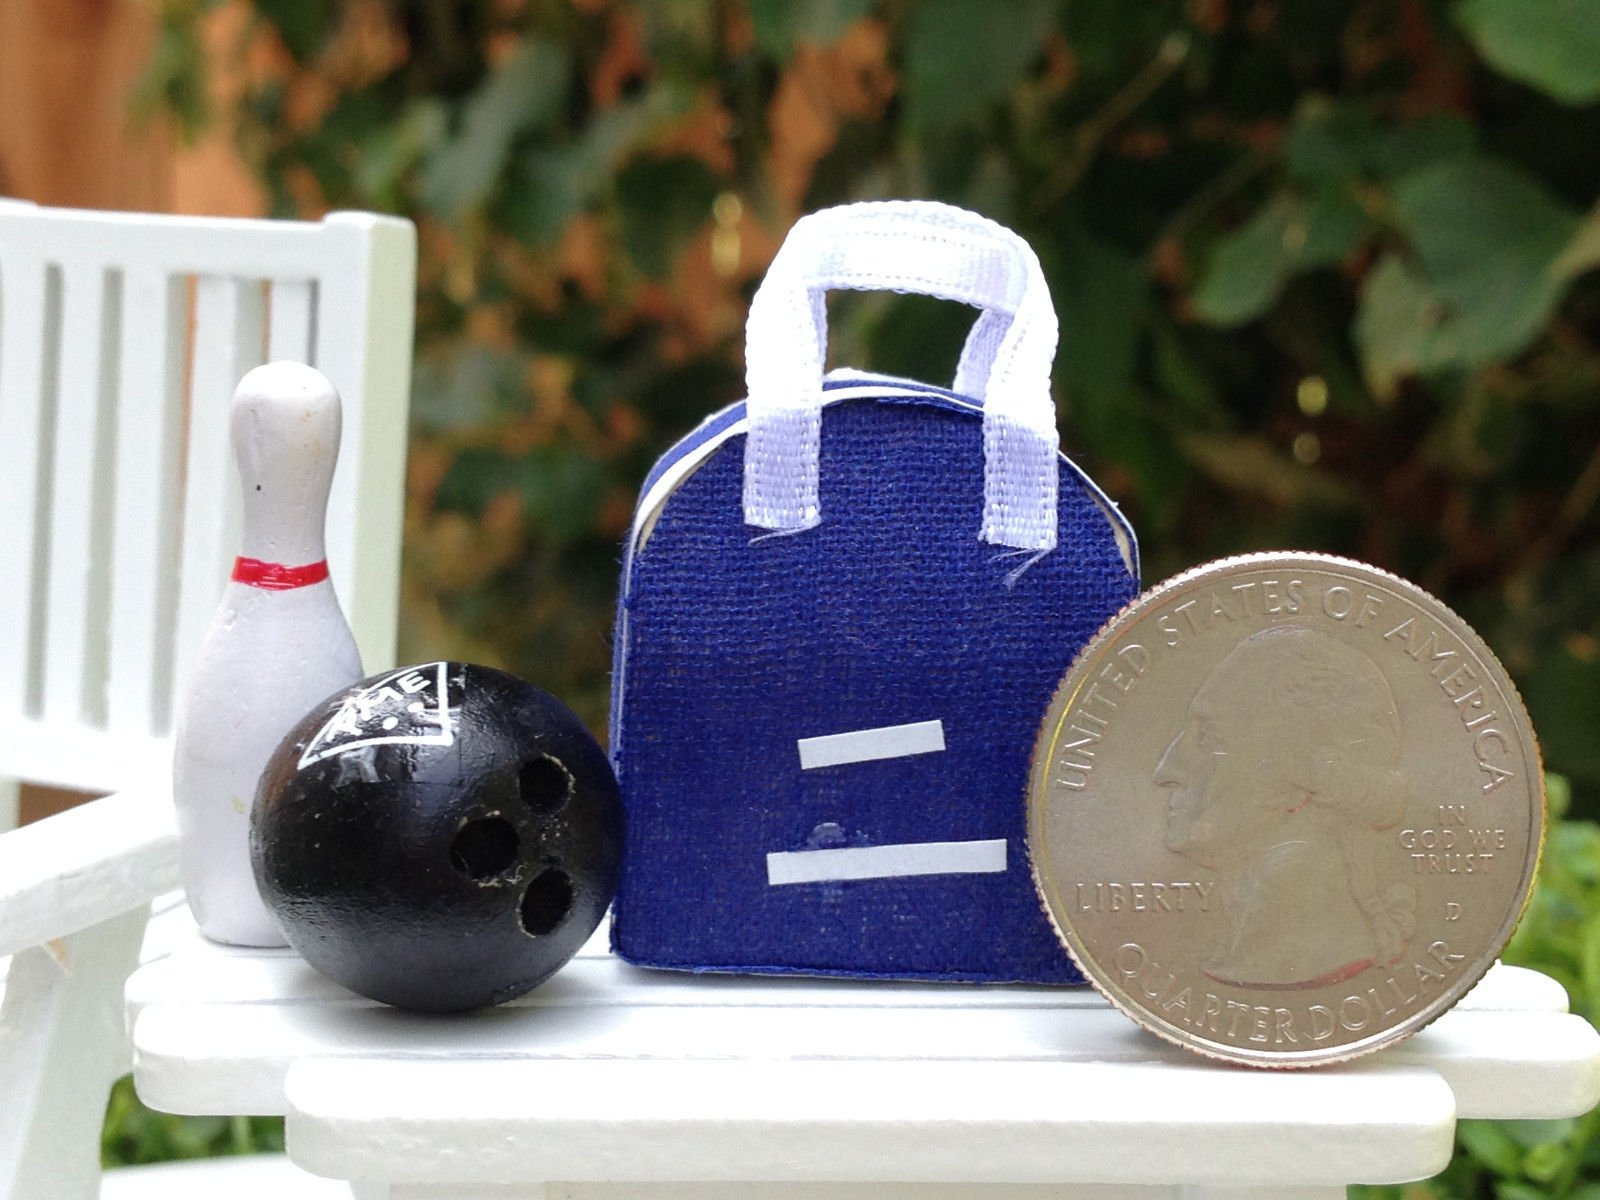 Miniature Dollhouse Fairy Garden Accessories Bowling Bag With Pin & Ball by Miniature (Image #2)